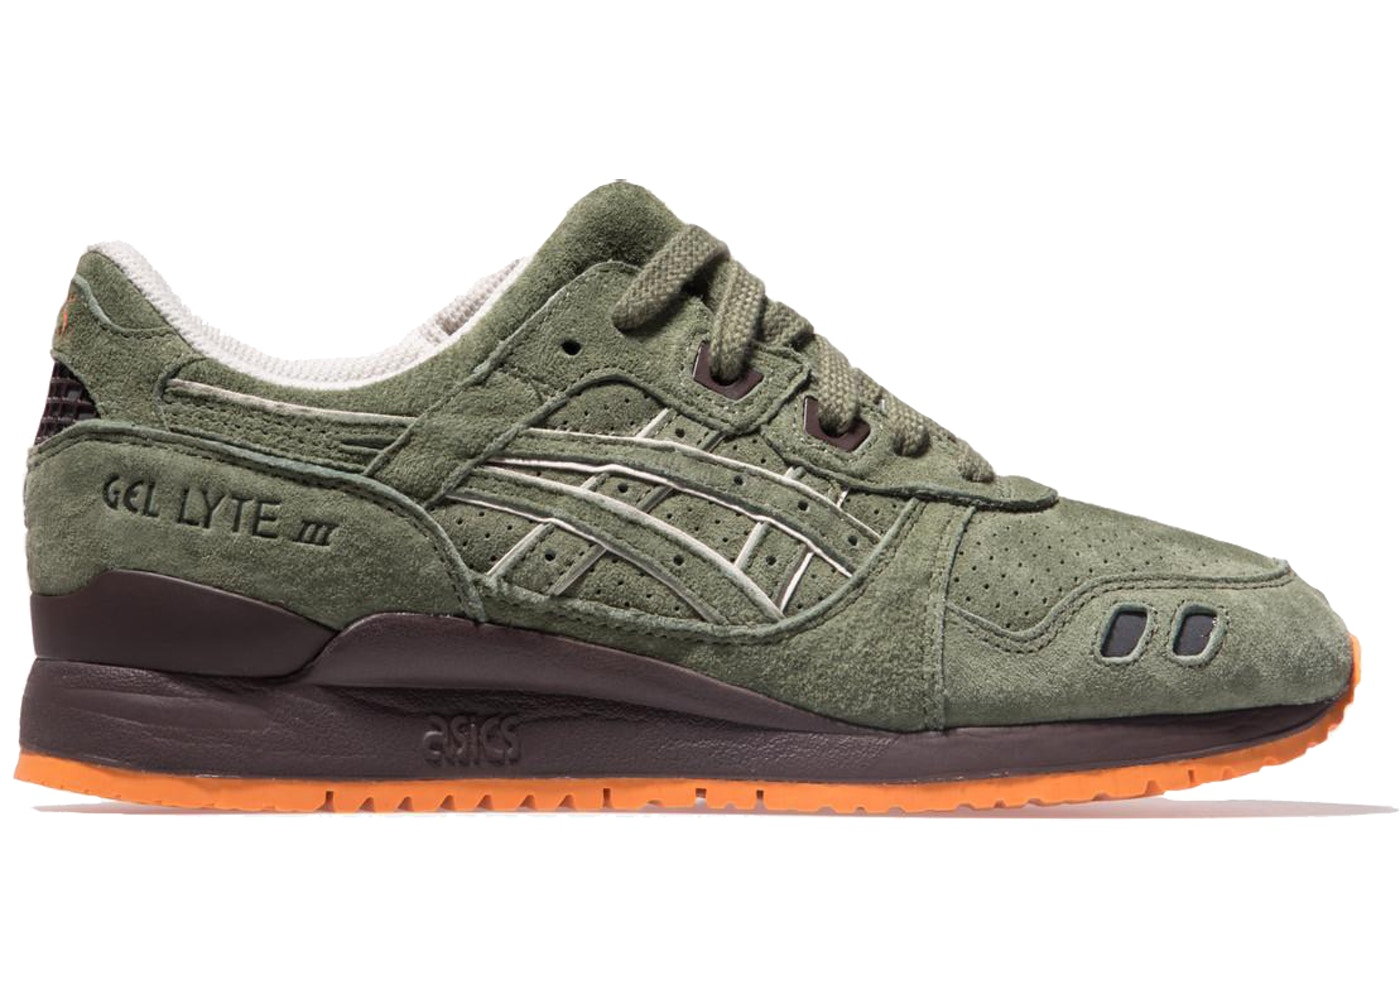 finest selection 88bbd 09361 ASICS Gel-Lyte III Ronnie Fieg Militia (Special Box)